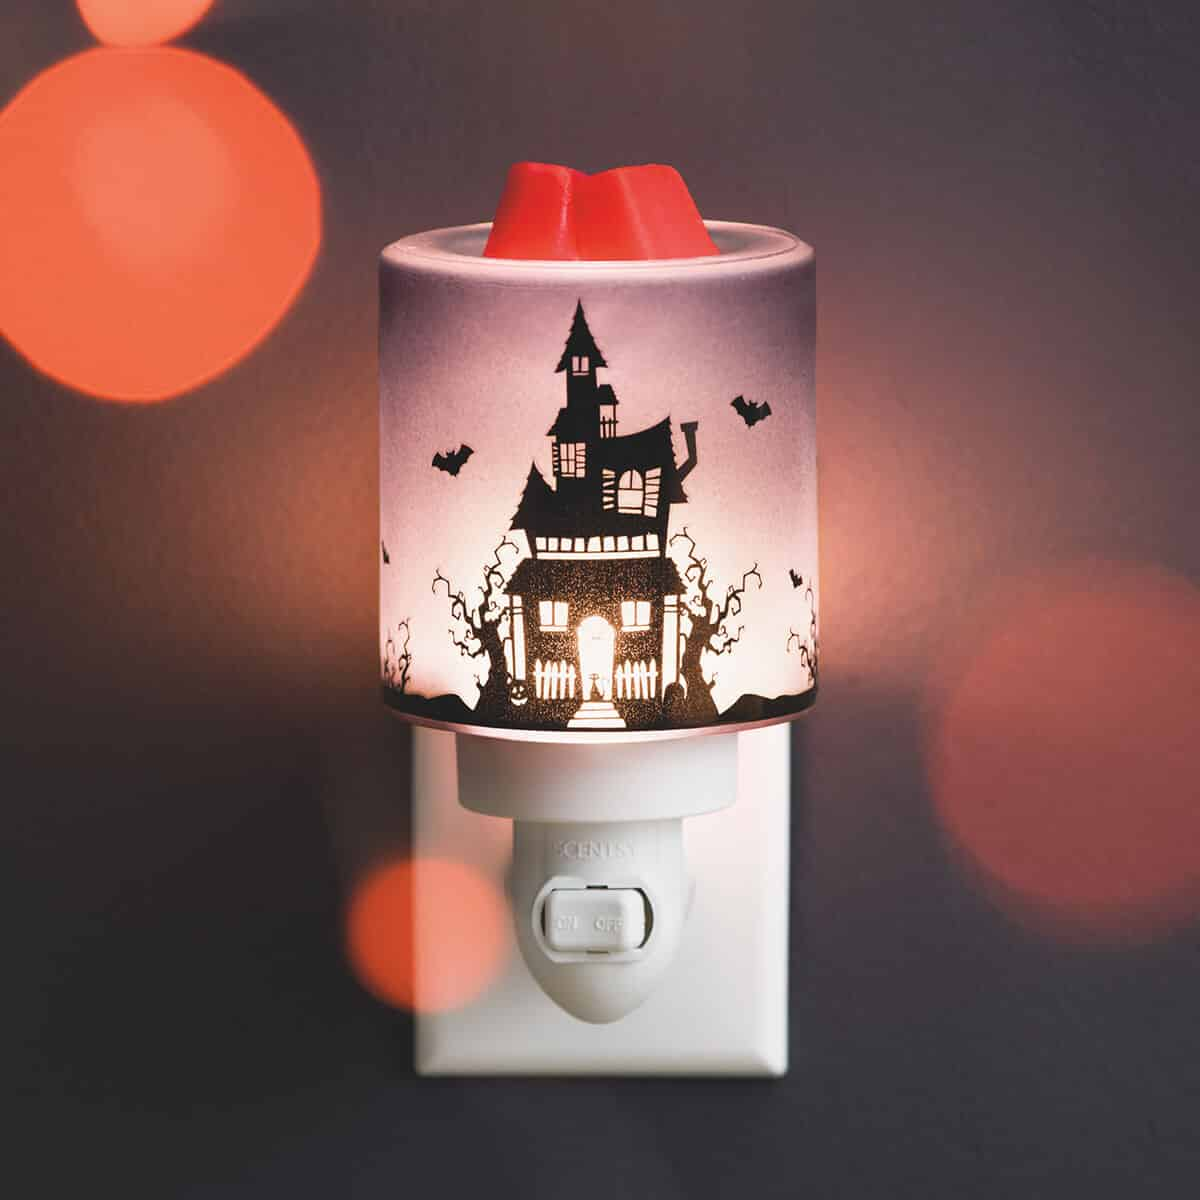 2017 Fall Scentsy Collection Harvest